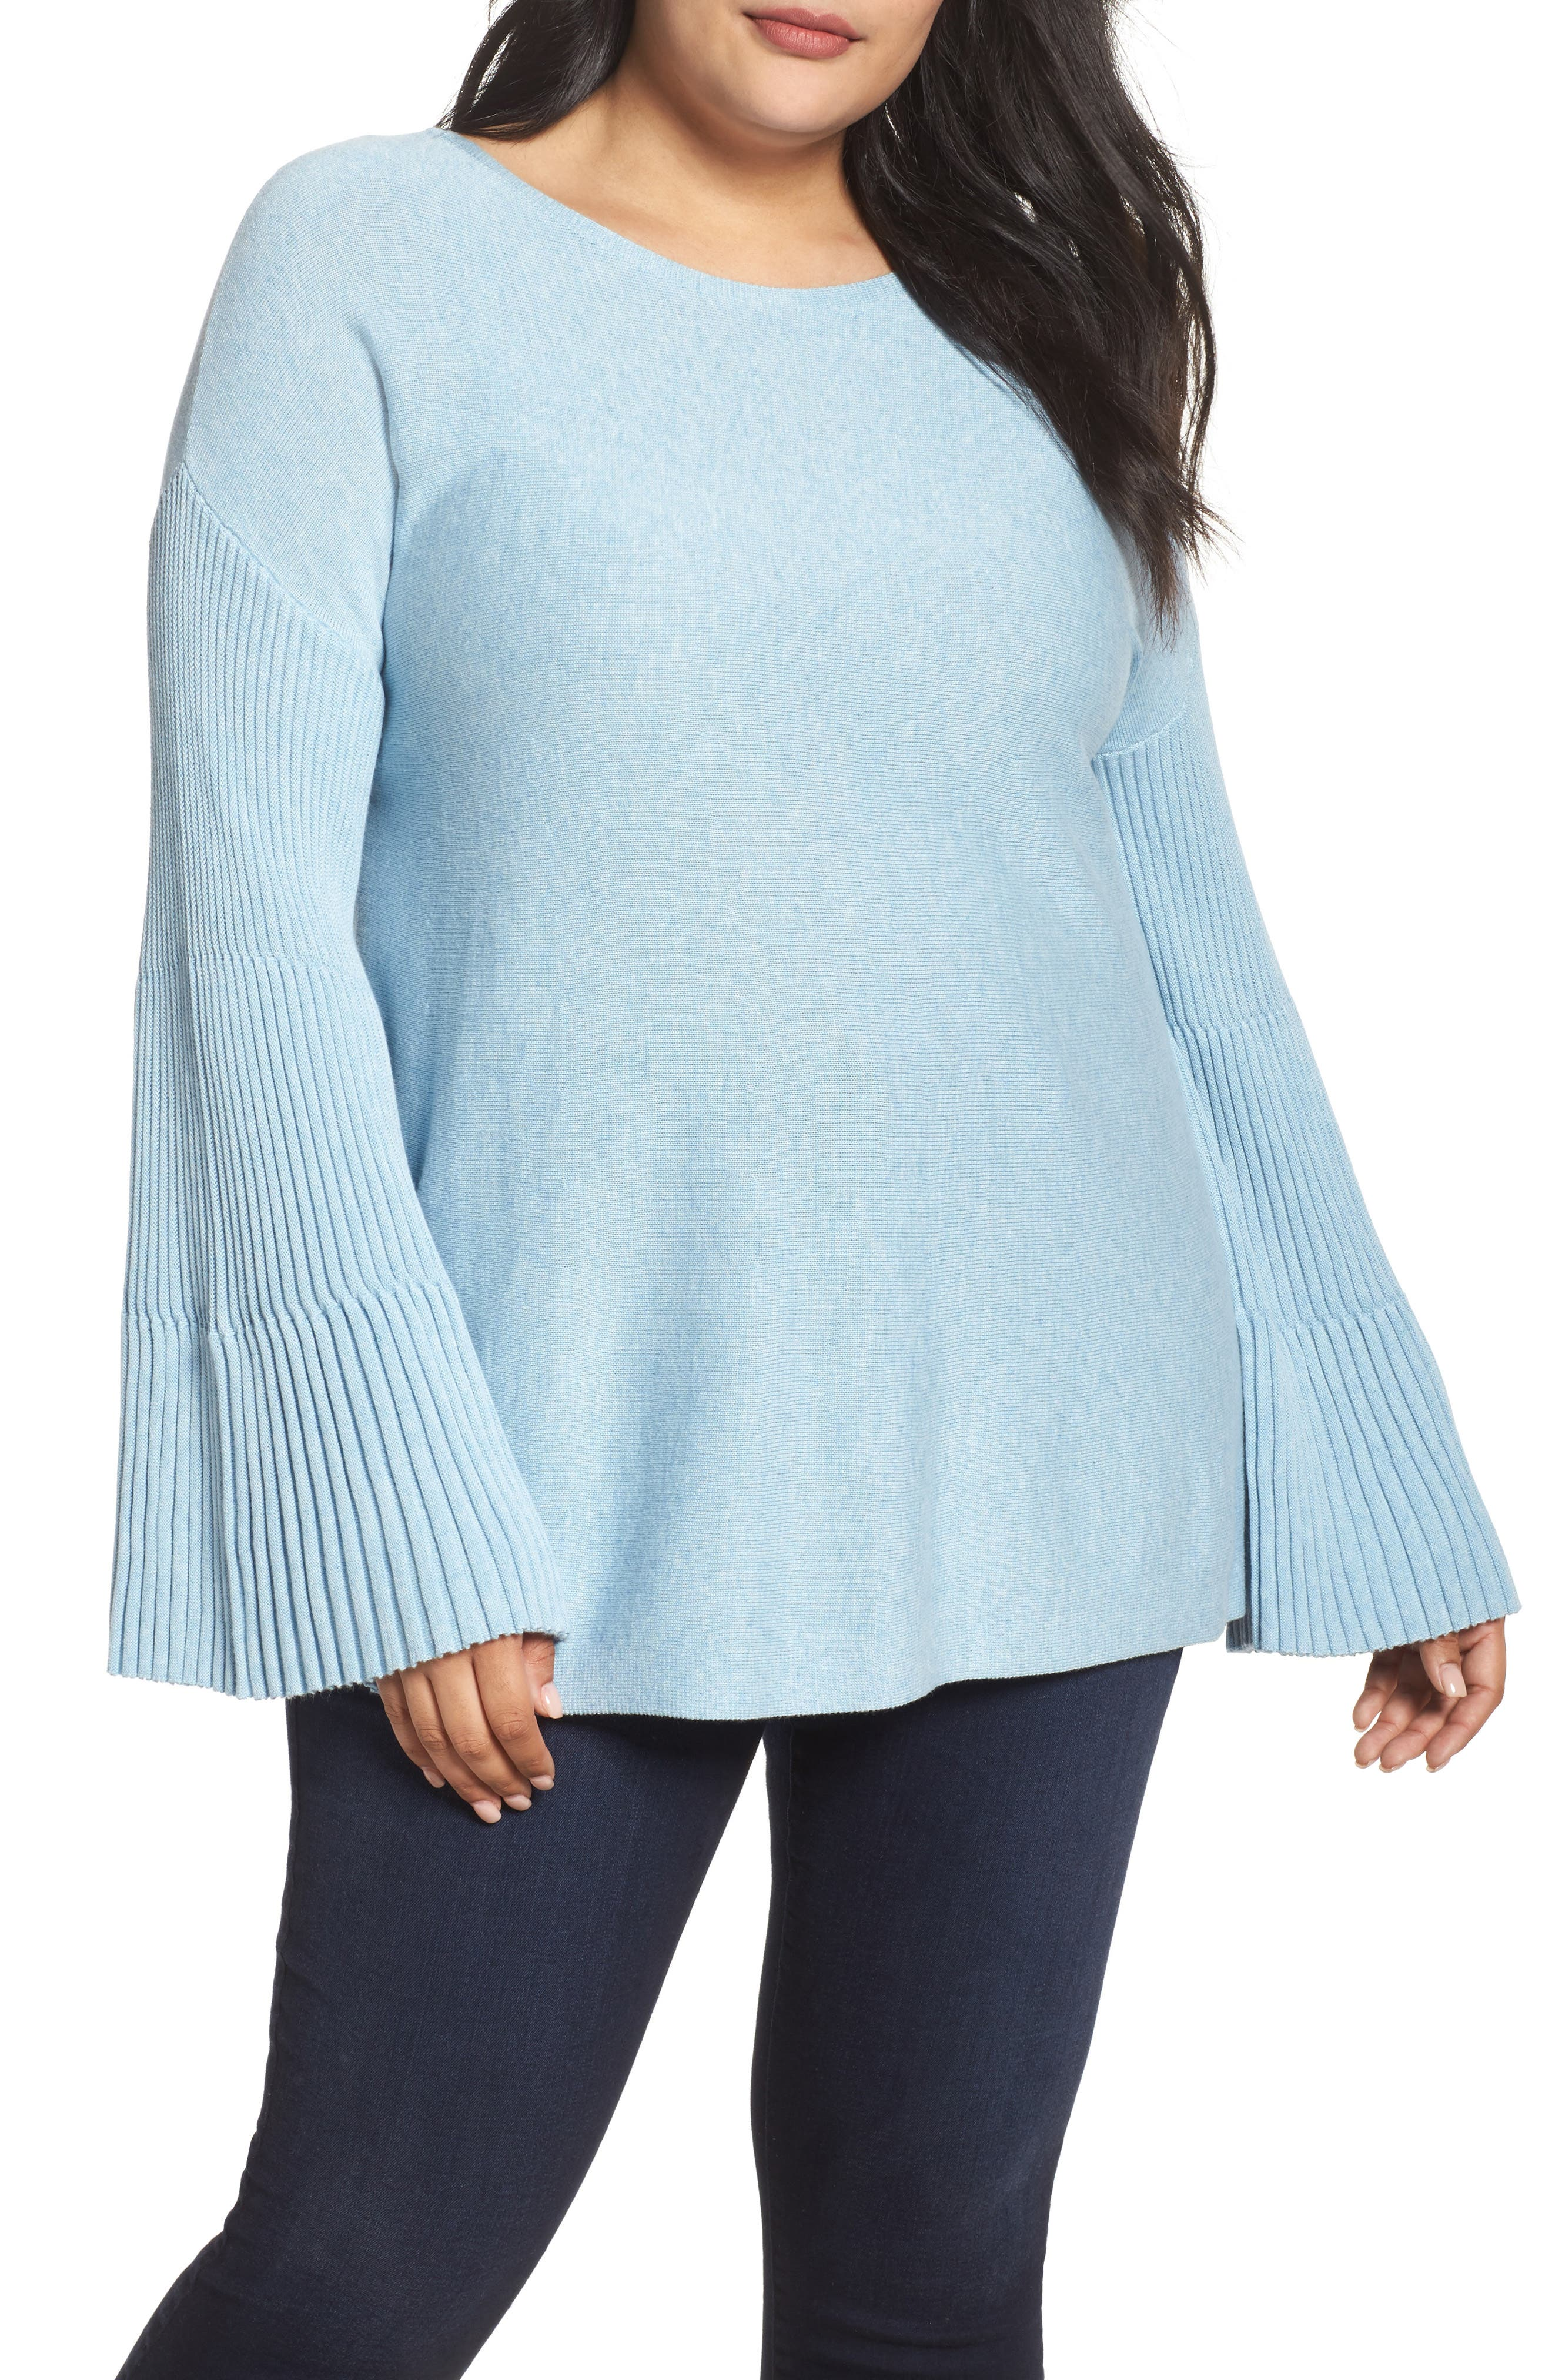 Alternate Image 1 Selected - Vince Camuto Ribbed Bell Sleeve Sweater (Plus Size)